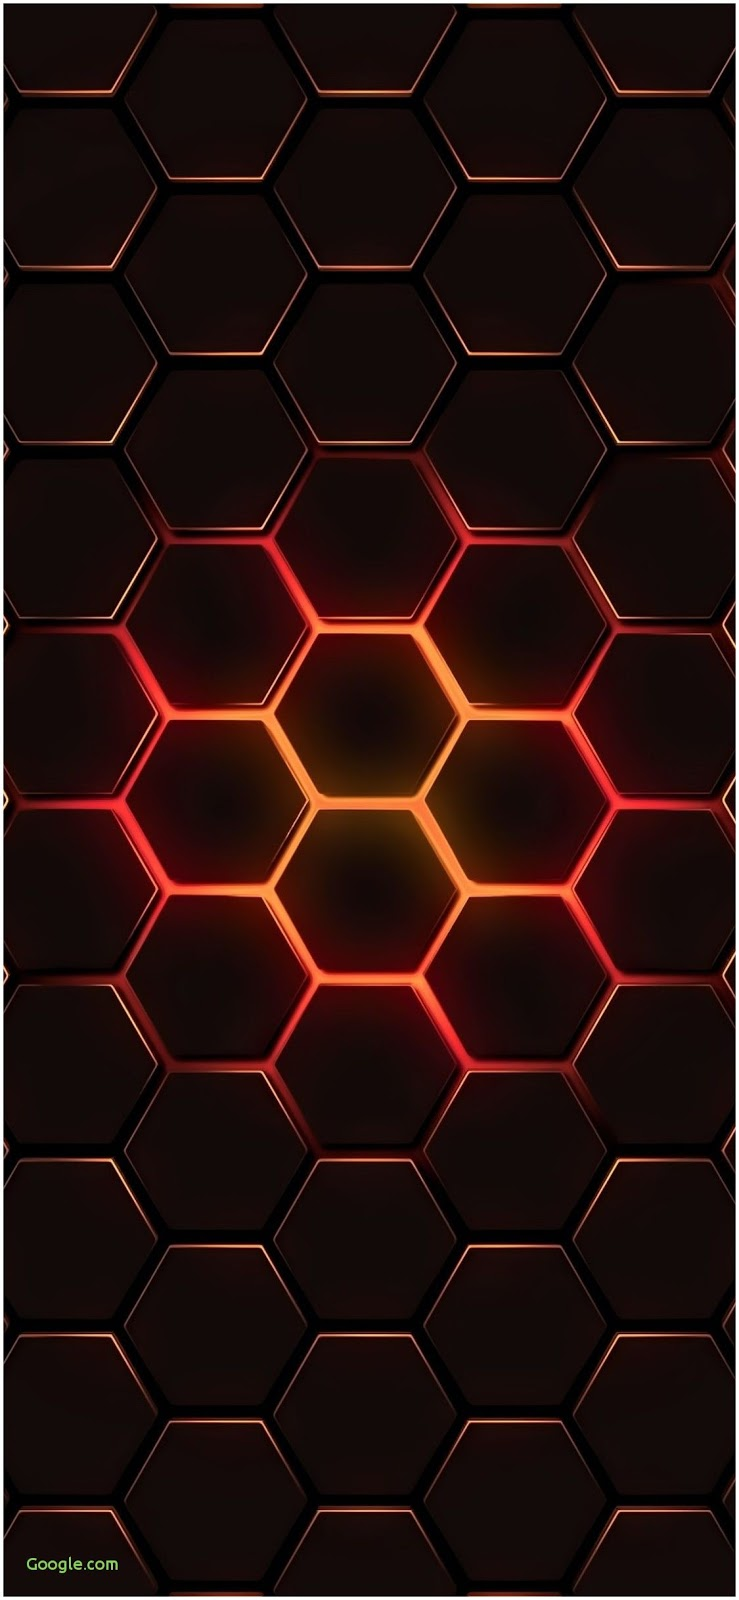 iphone wallpapers 4k Inspirational 1125×2436 Hexagon Geometry 4k